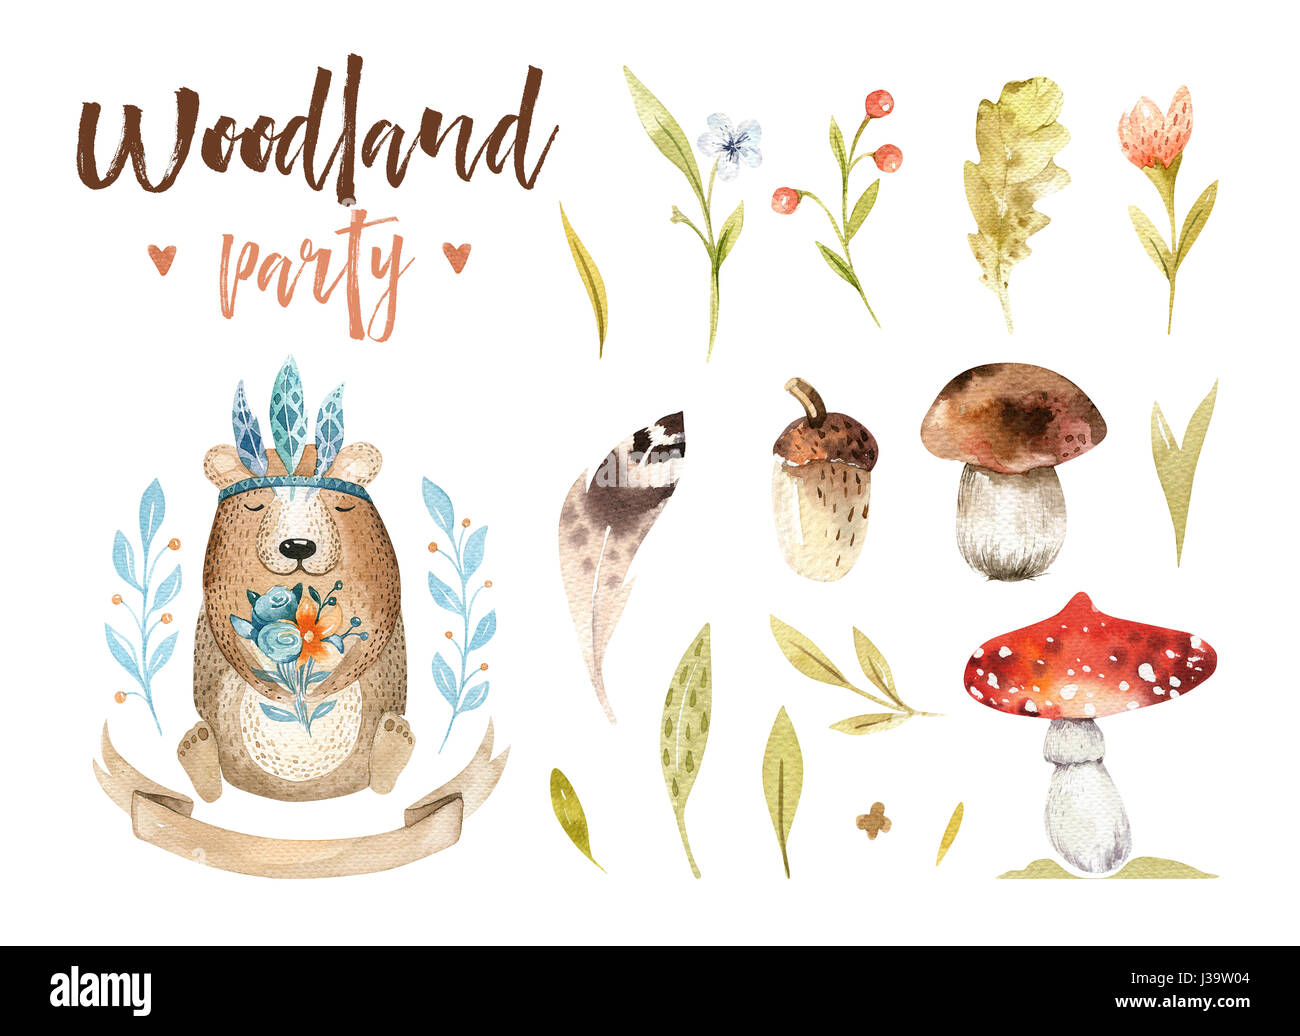 Cute baby bear animal nursery isolated illustration for children. Watercolor boho forest drawing, watercolour, image - Stock Image